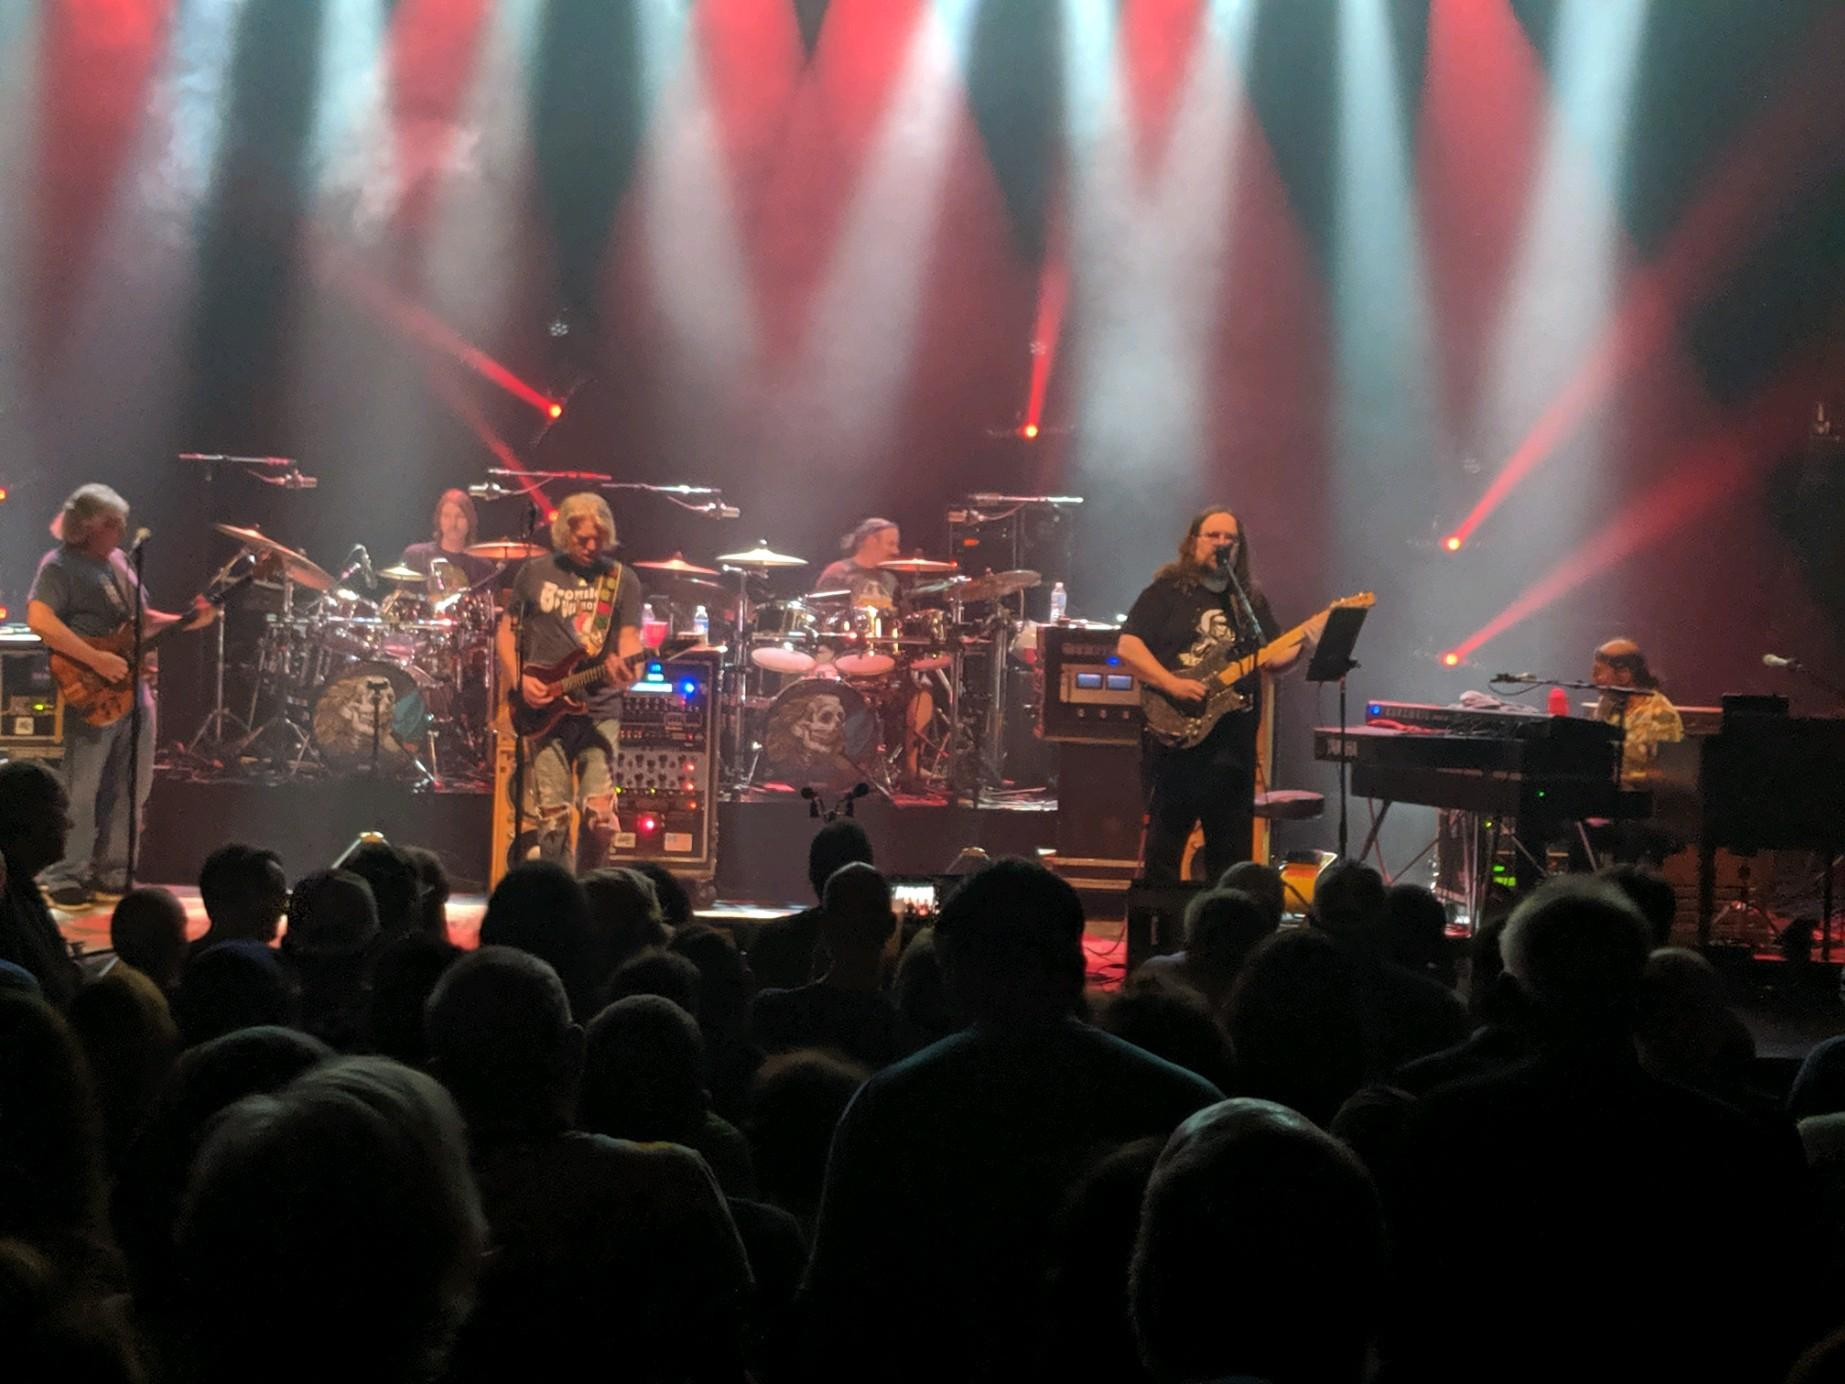 DarkStarOrchestra2019-09-26VicTheaterChicagoIL (4).jpg